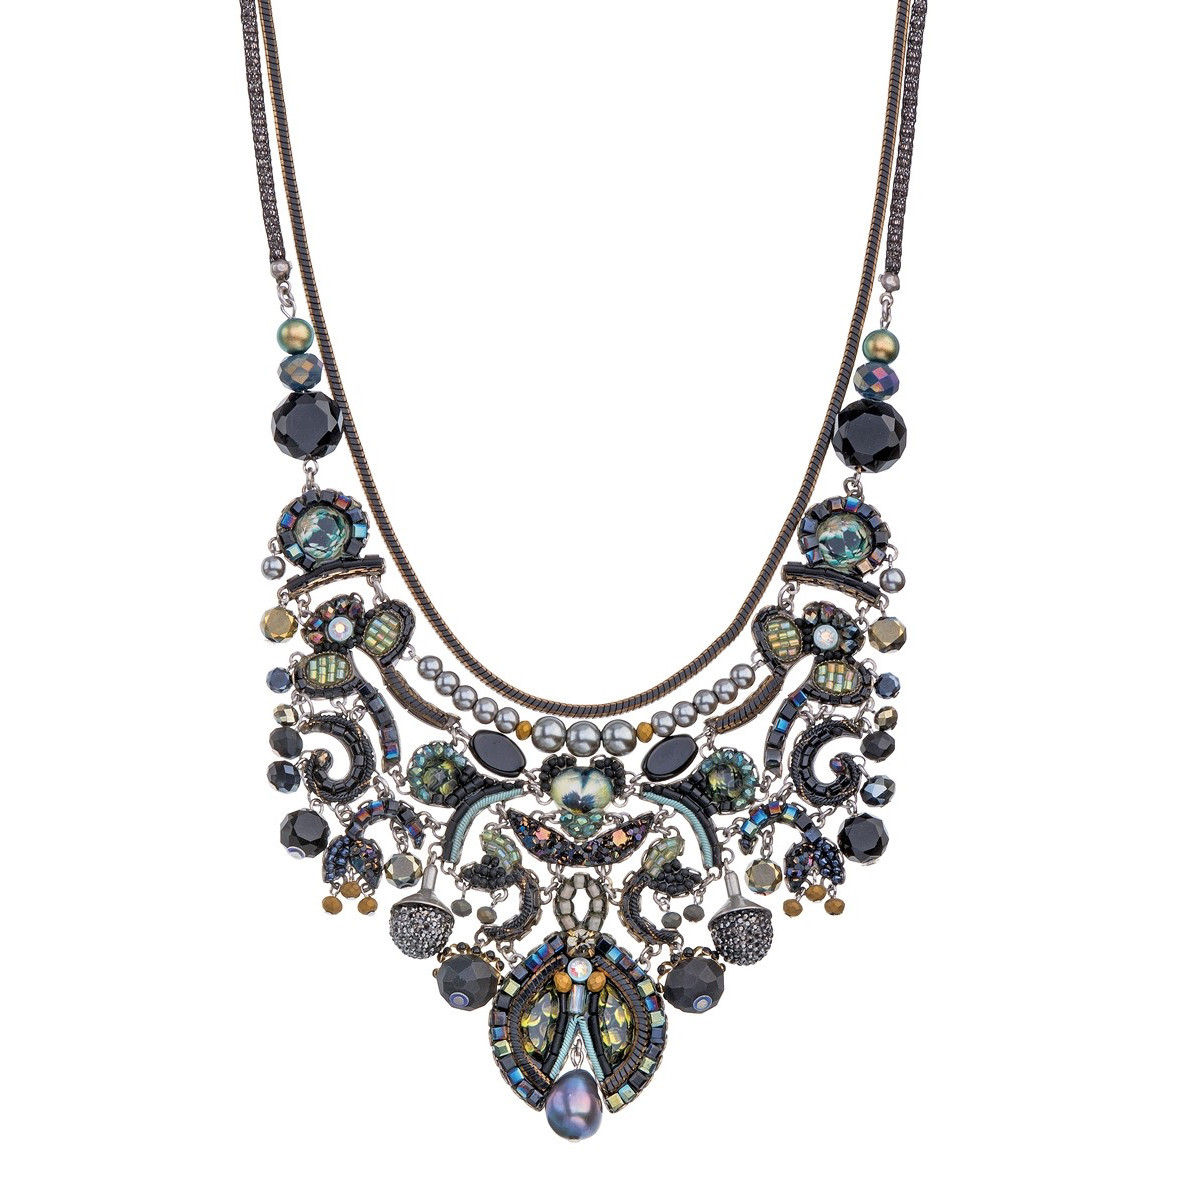 Ayala Bar Festival Night Cast a Spell Necklace - New Arrival